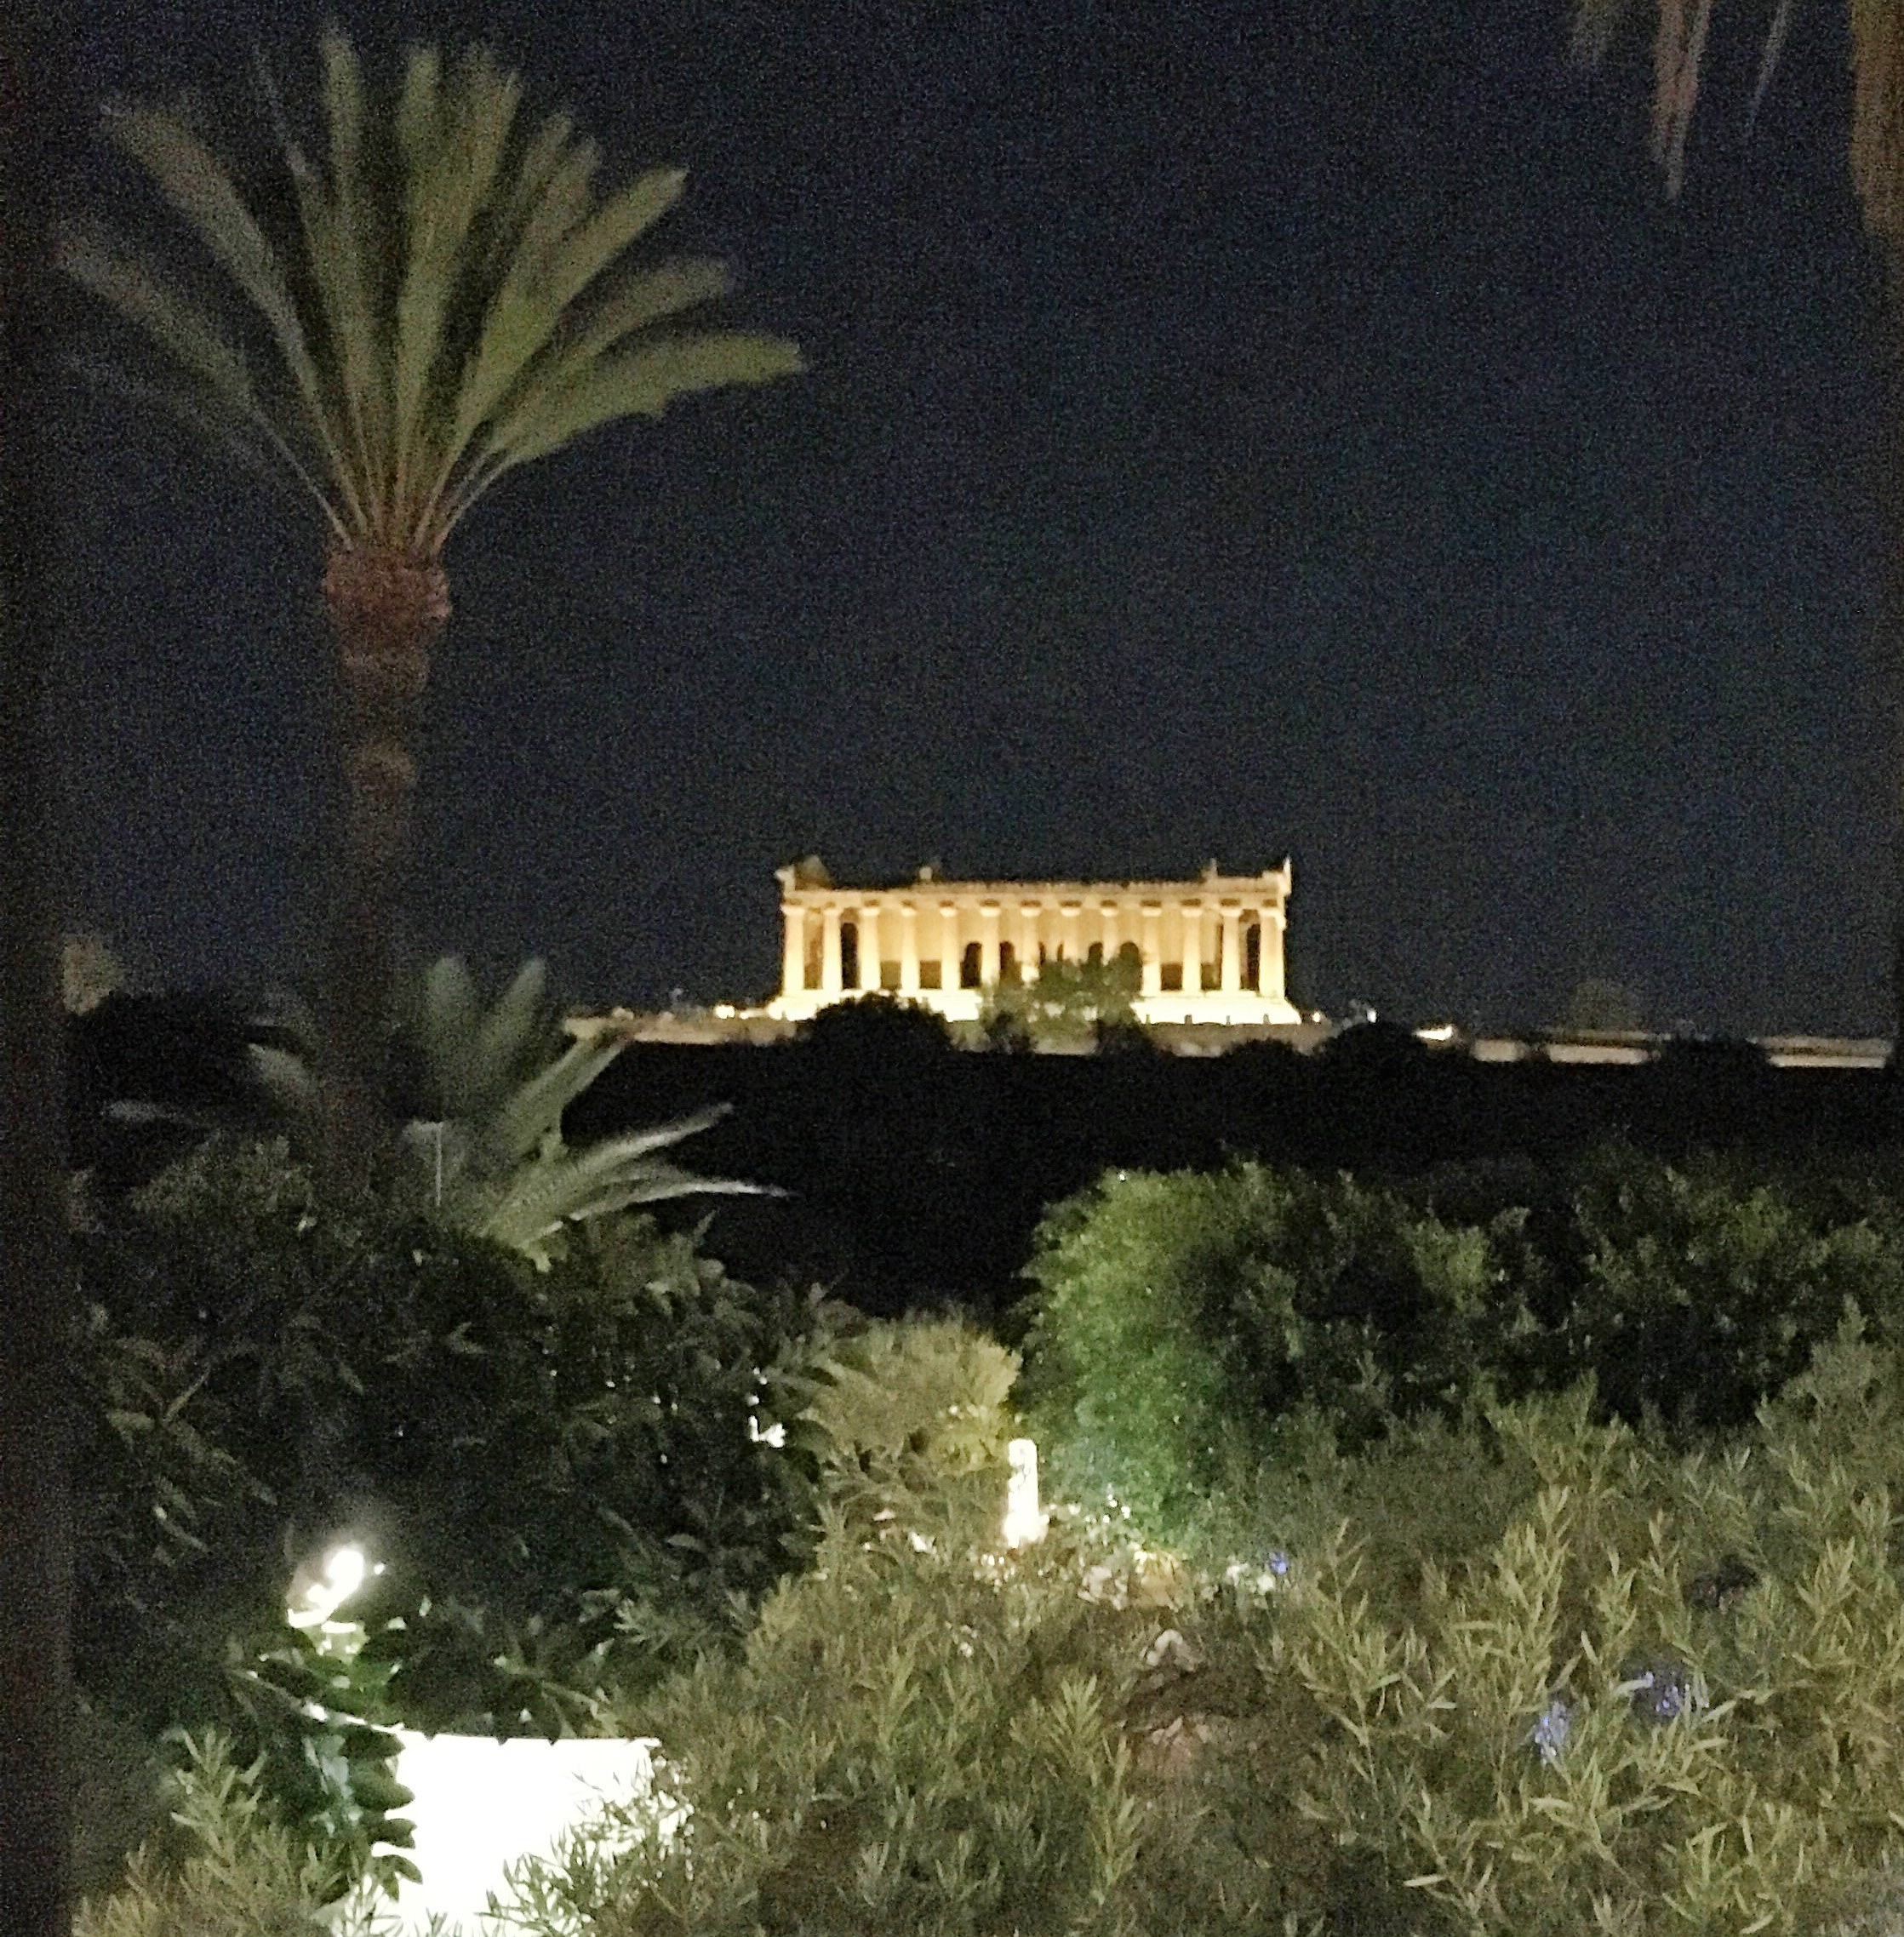 The Temple of Concordia in the Valley of the Temples from afar, September 2016.